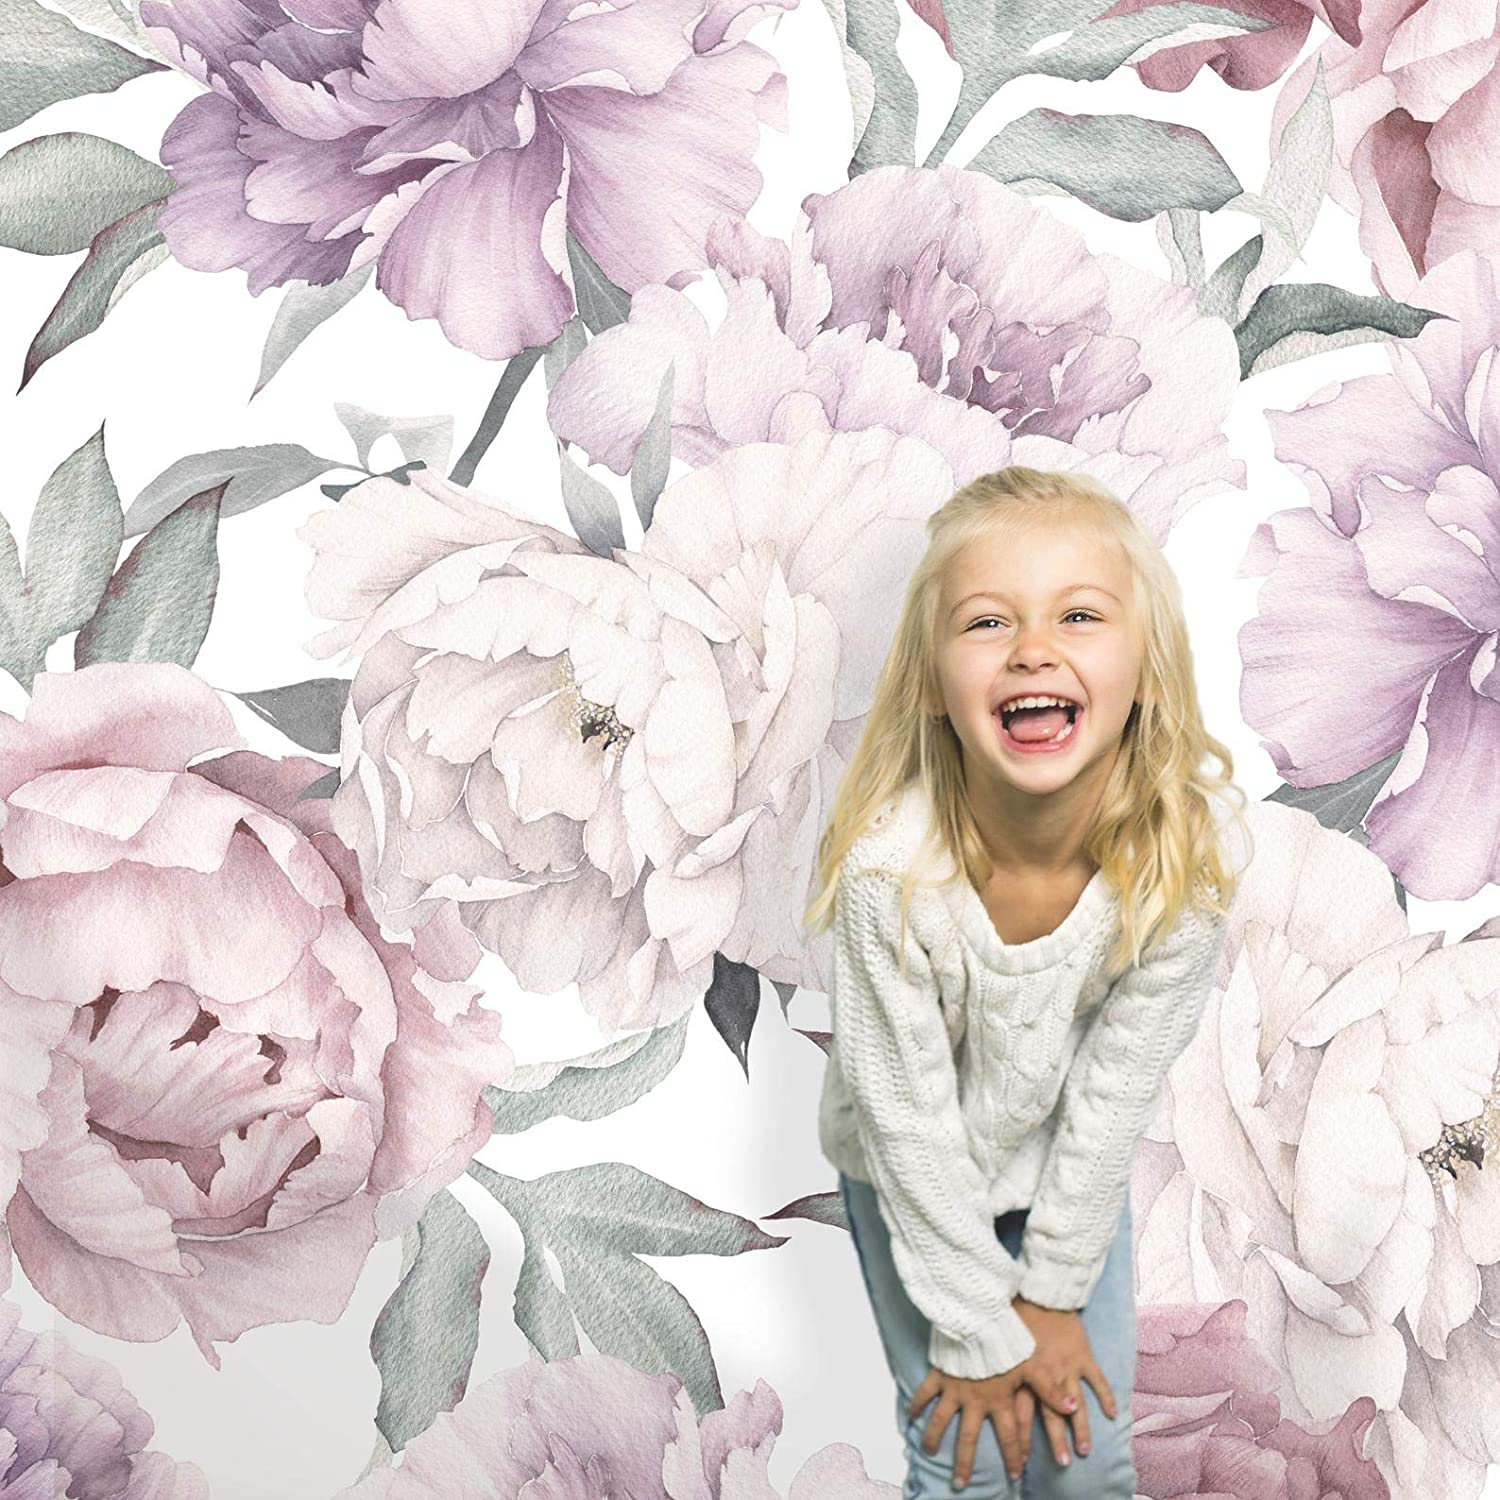 Coloritto Peony Bouquet Peel and Stick Wallpaper   Removable Flo